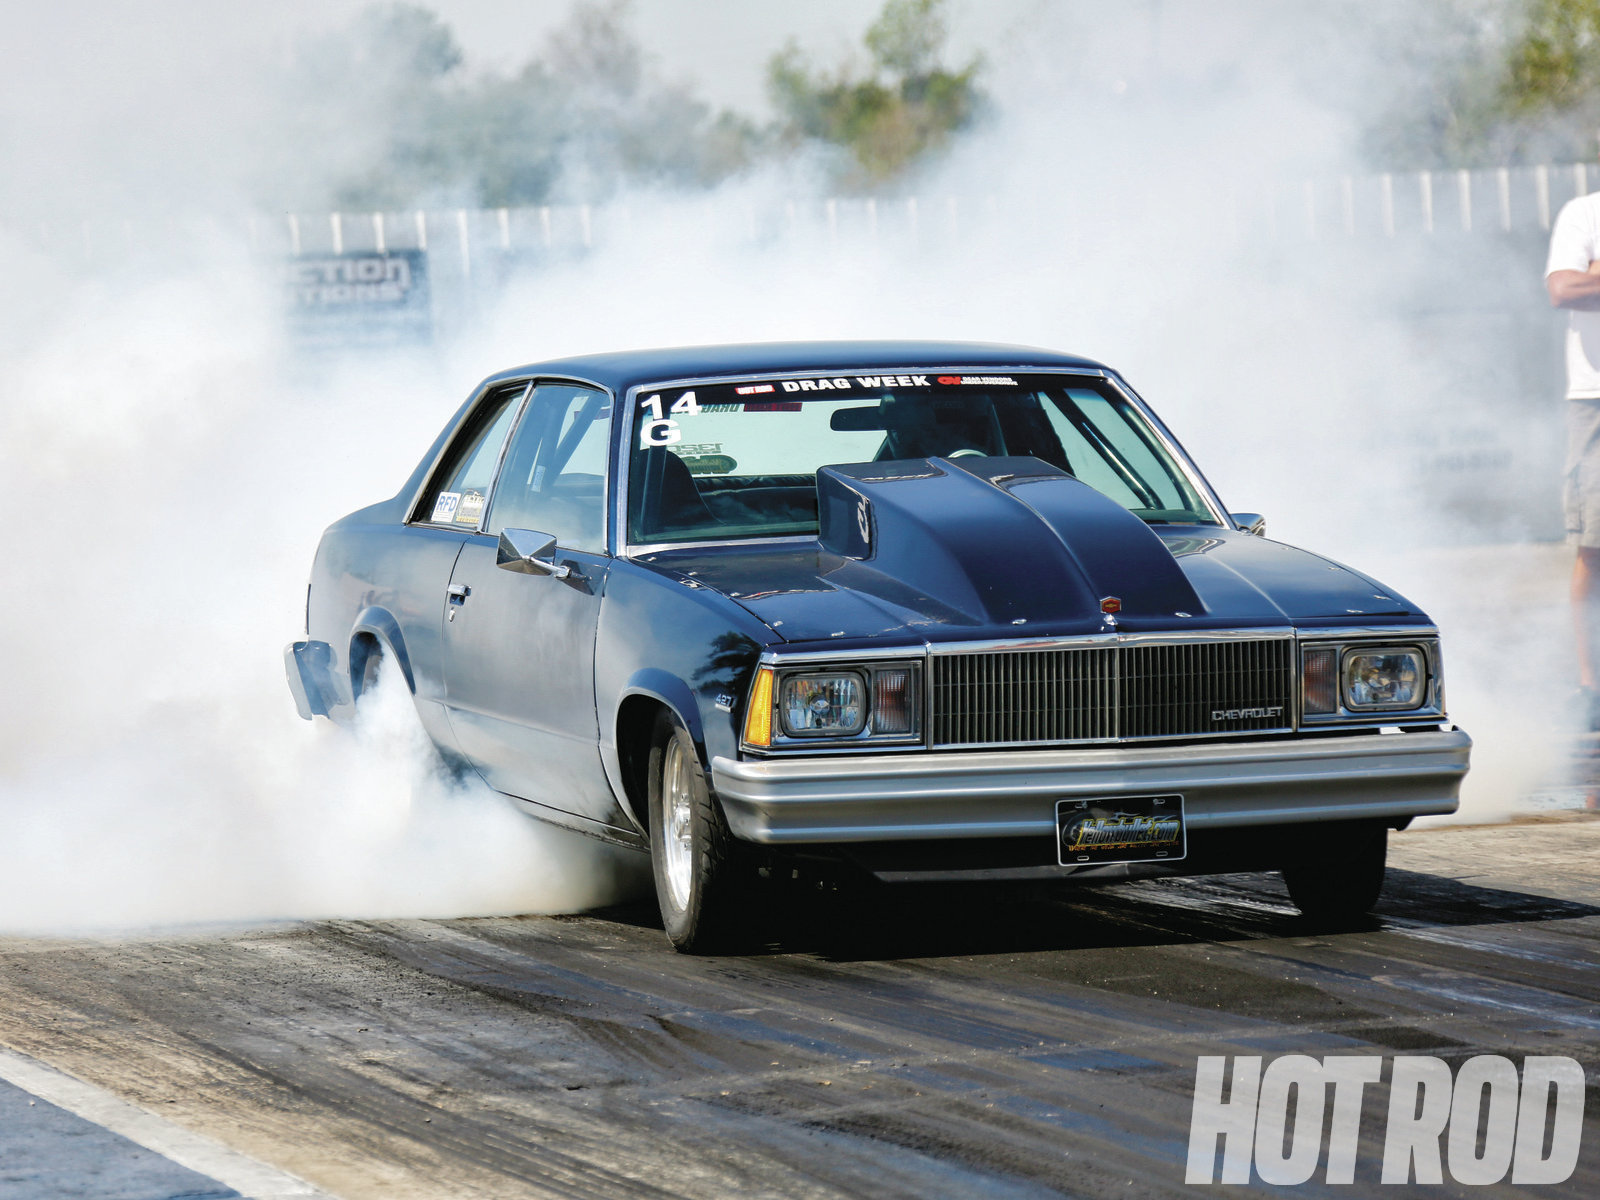 chevrolet malibu hot rod - photo #32